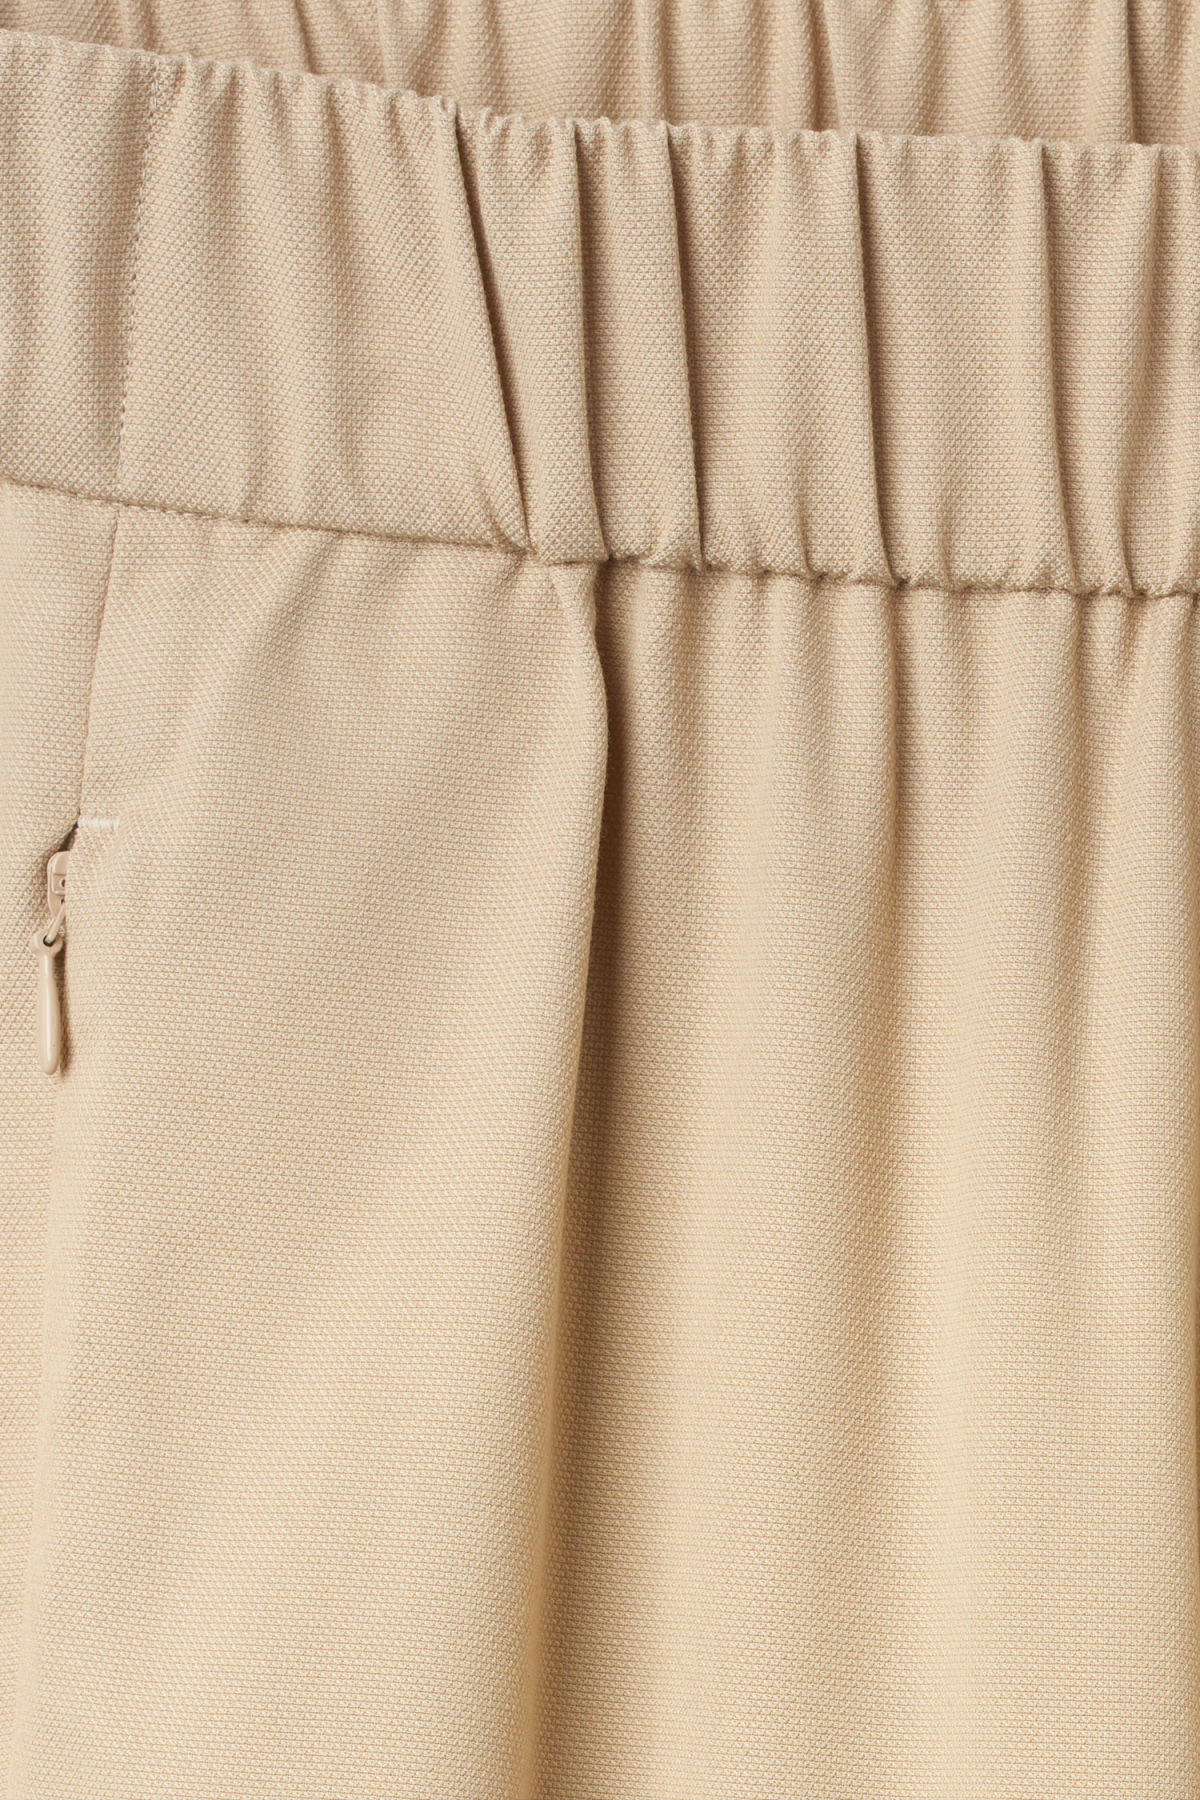 Detailed image of Weekday amelia woven trousers in beige